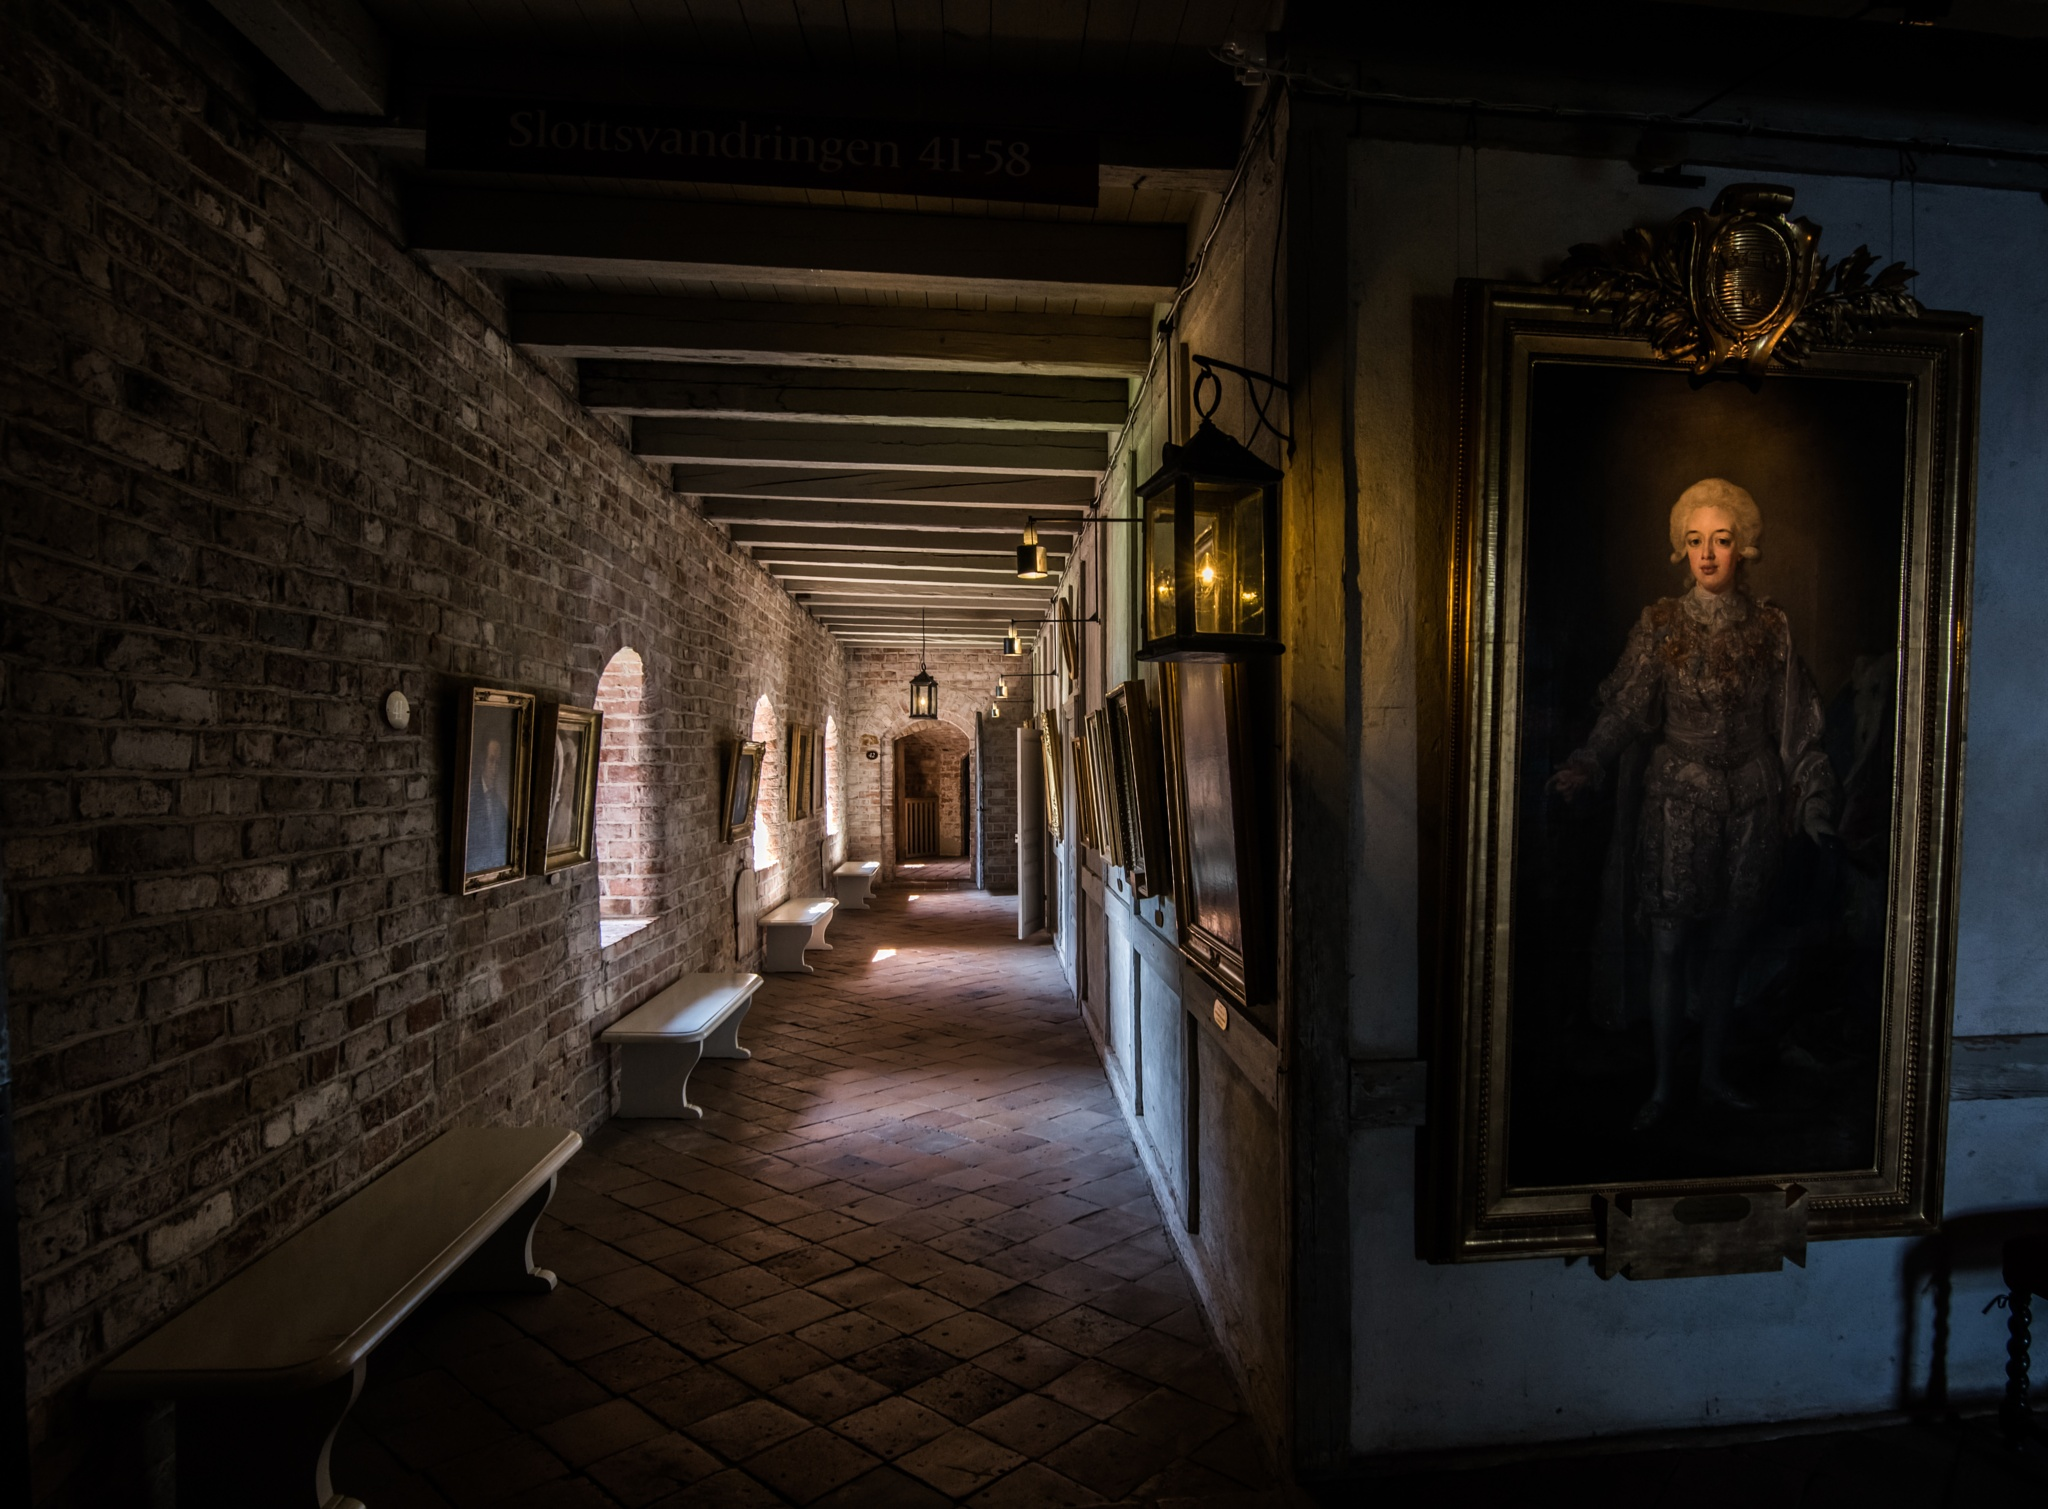 gripsholm2 by hutchst